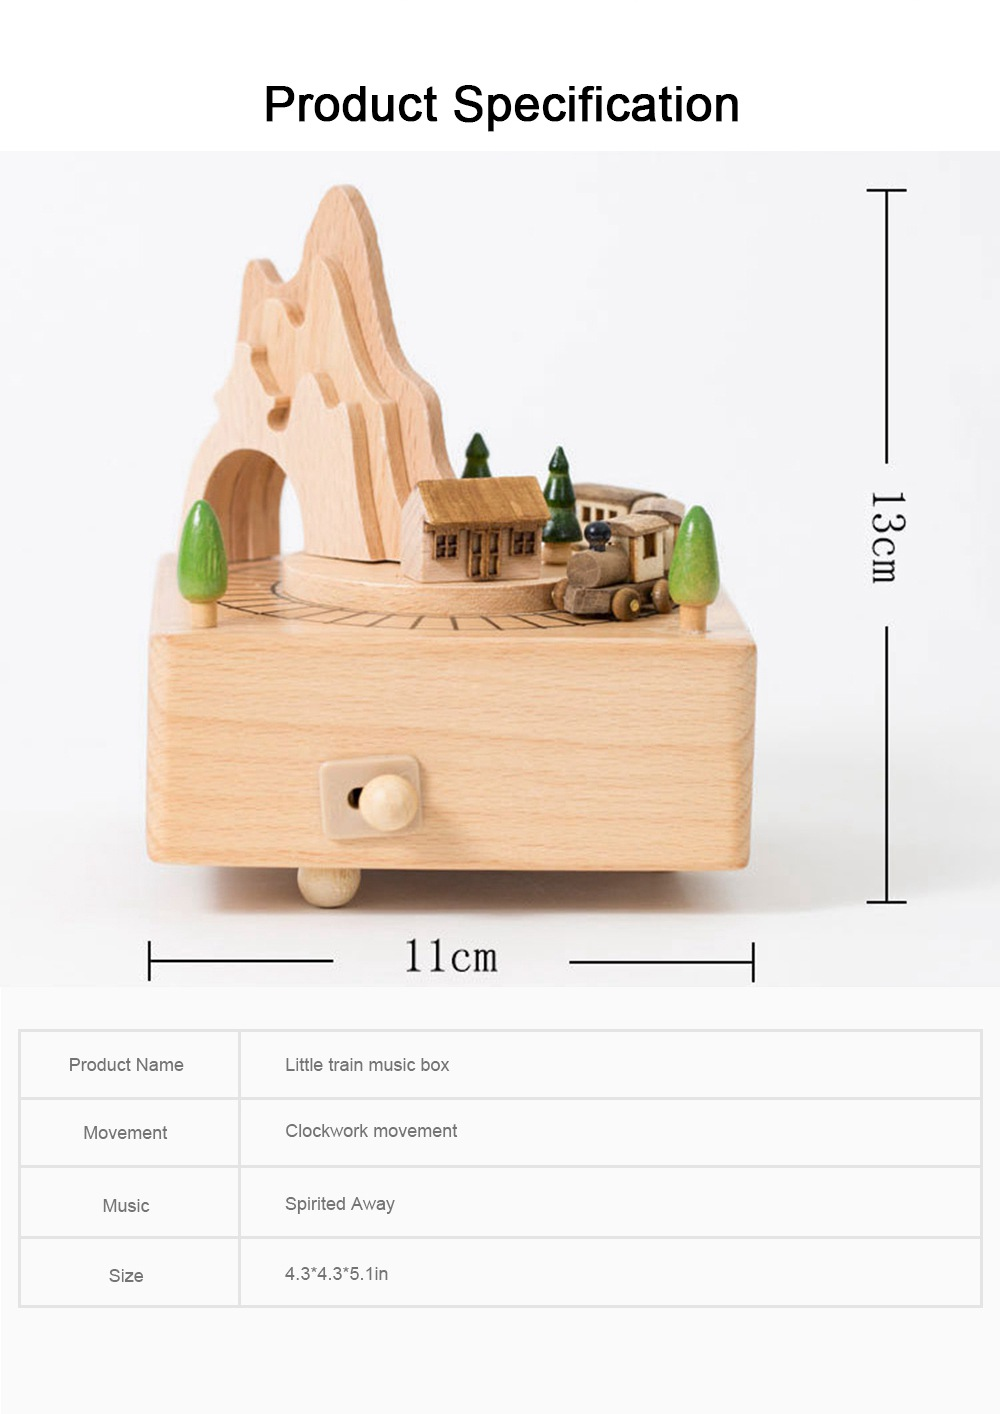 Creative Roller Coaster Wooden Music Box, Hand-made Wood Ware, Gifts Presents Ideal for Girlfriend Children Kids 6